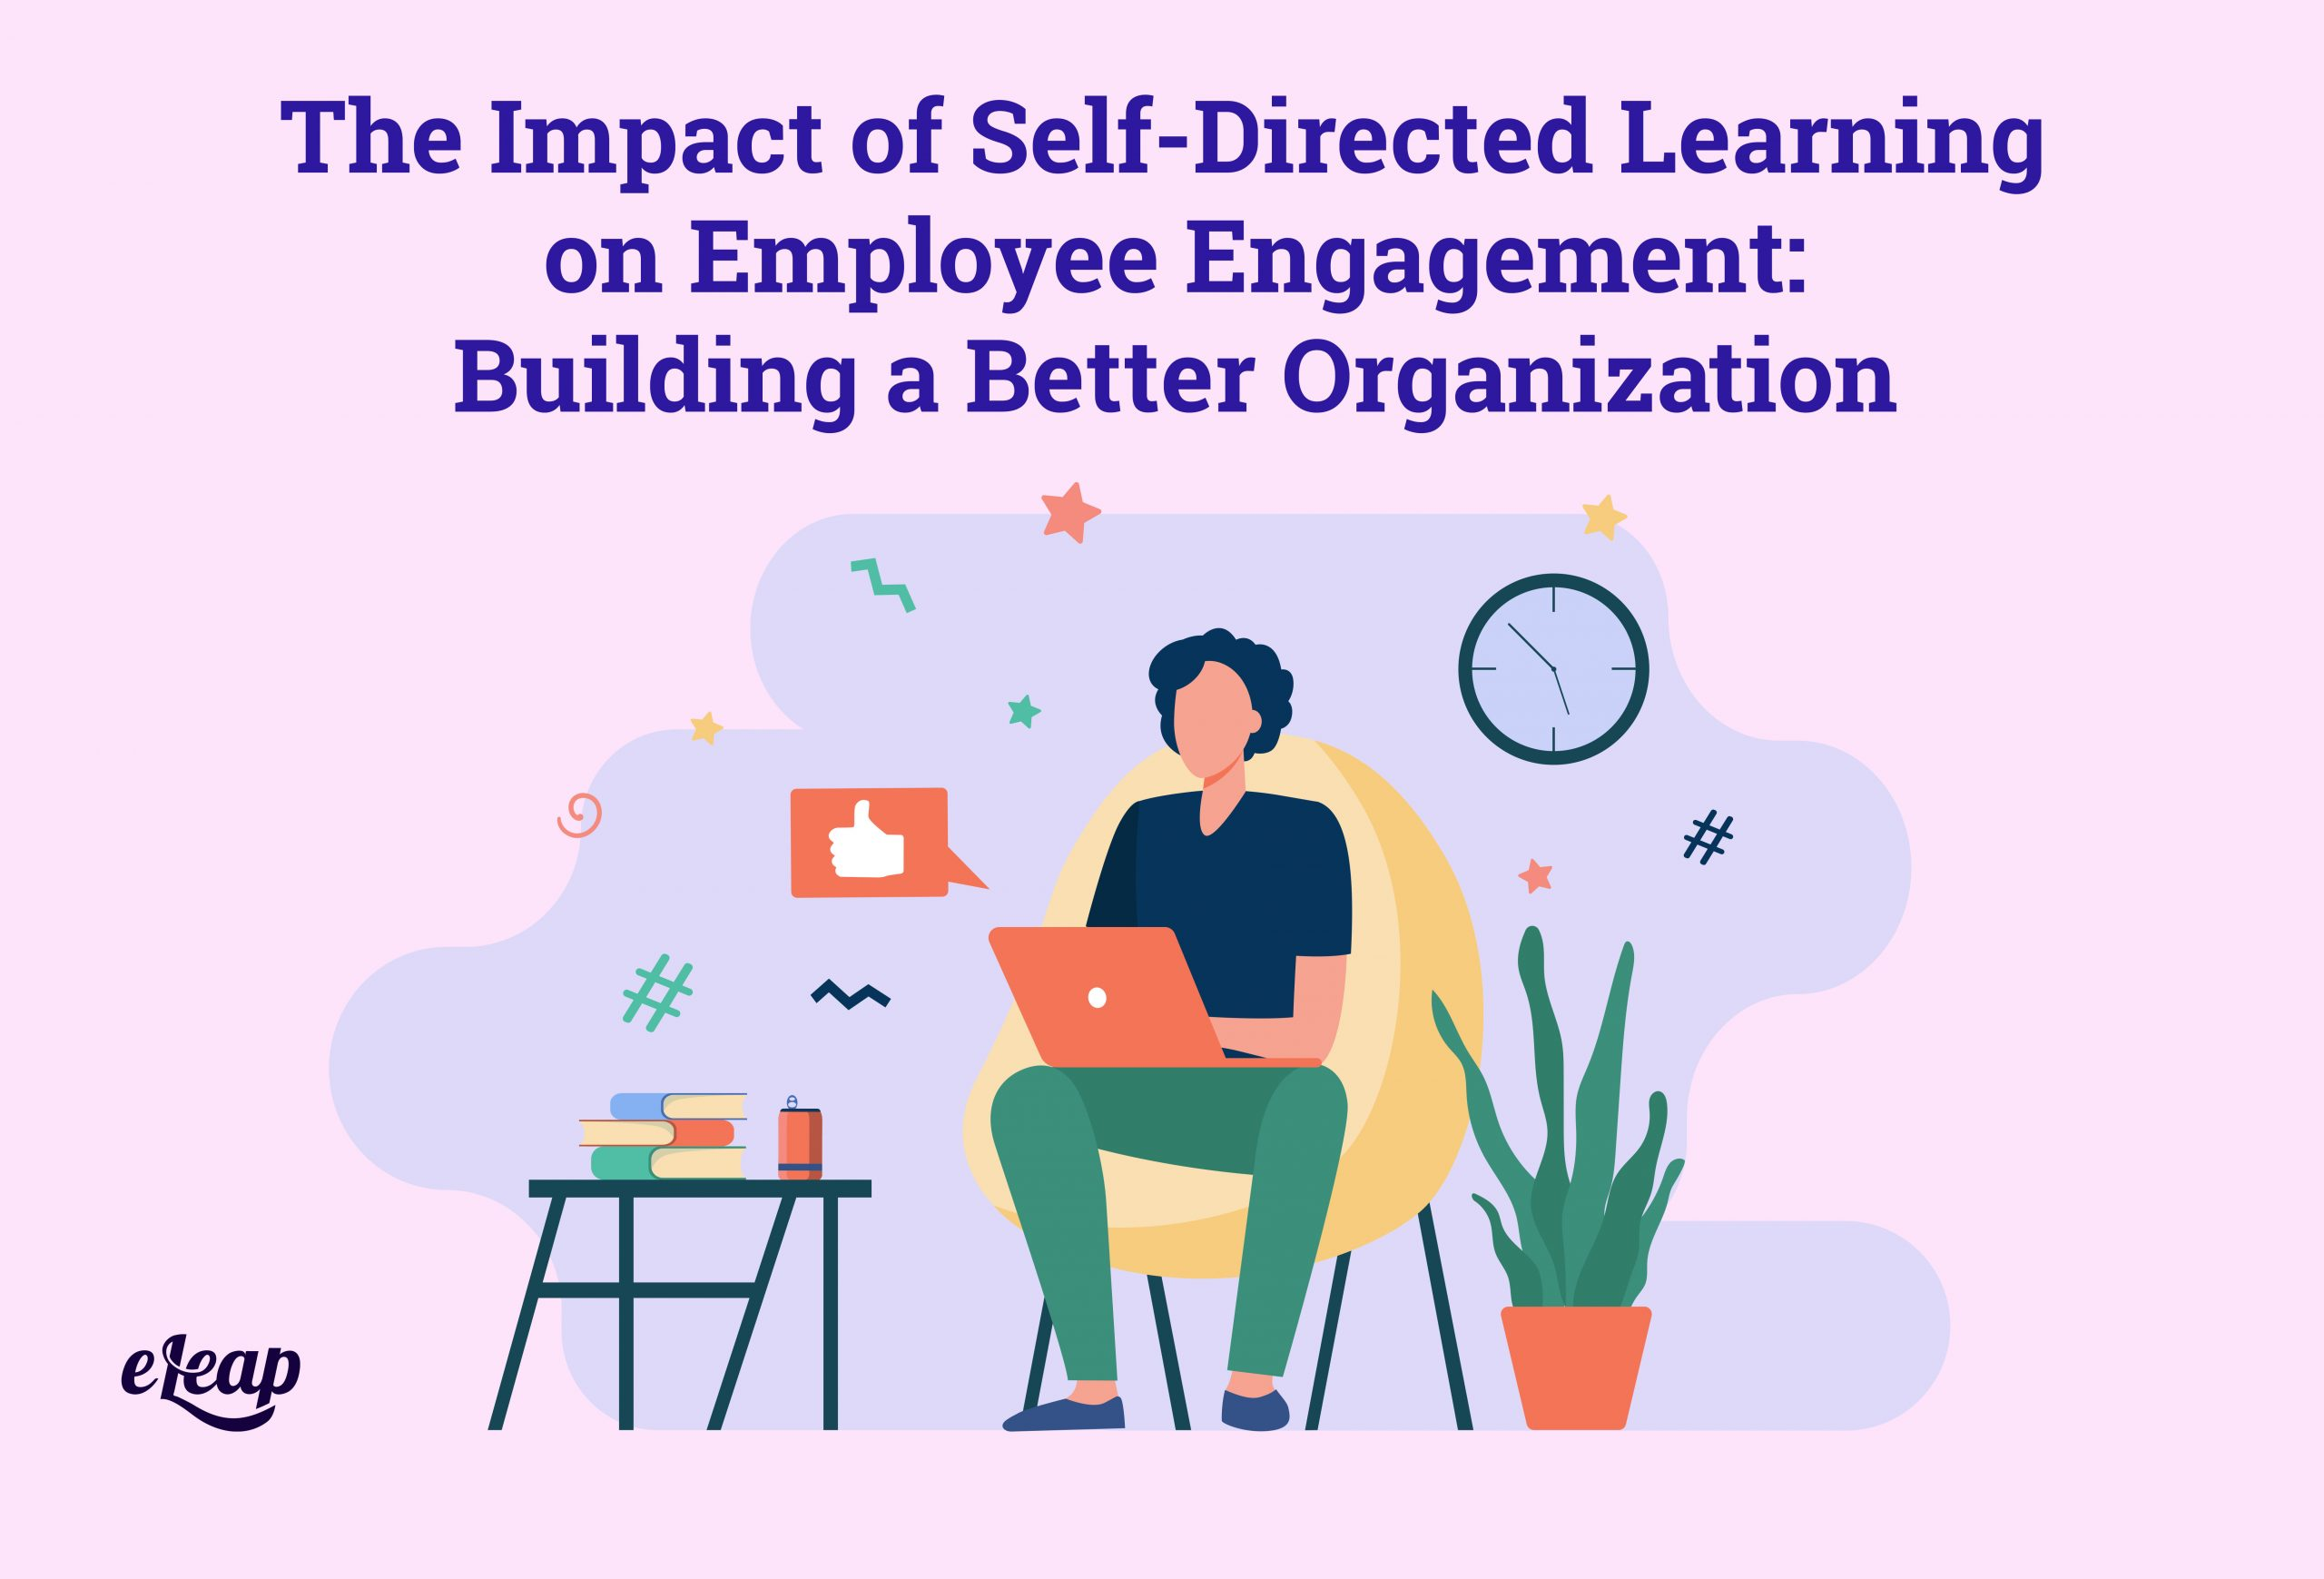 The Impact of Self-Directed Learning on Employee Engagement: Building a Better Organization